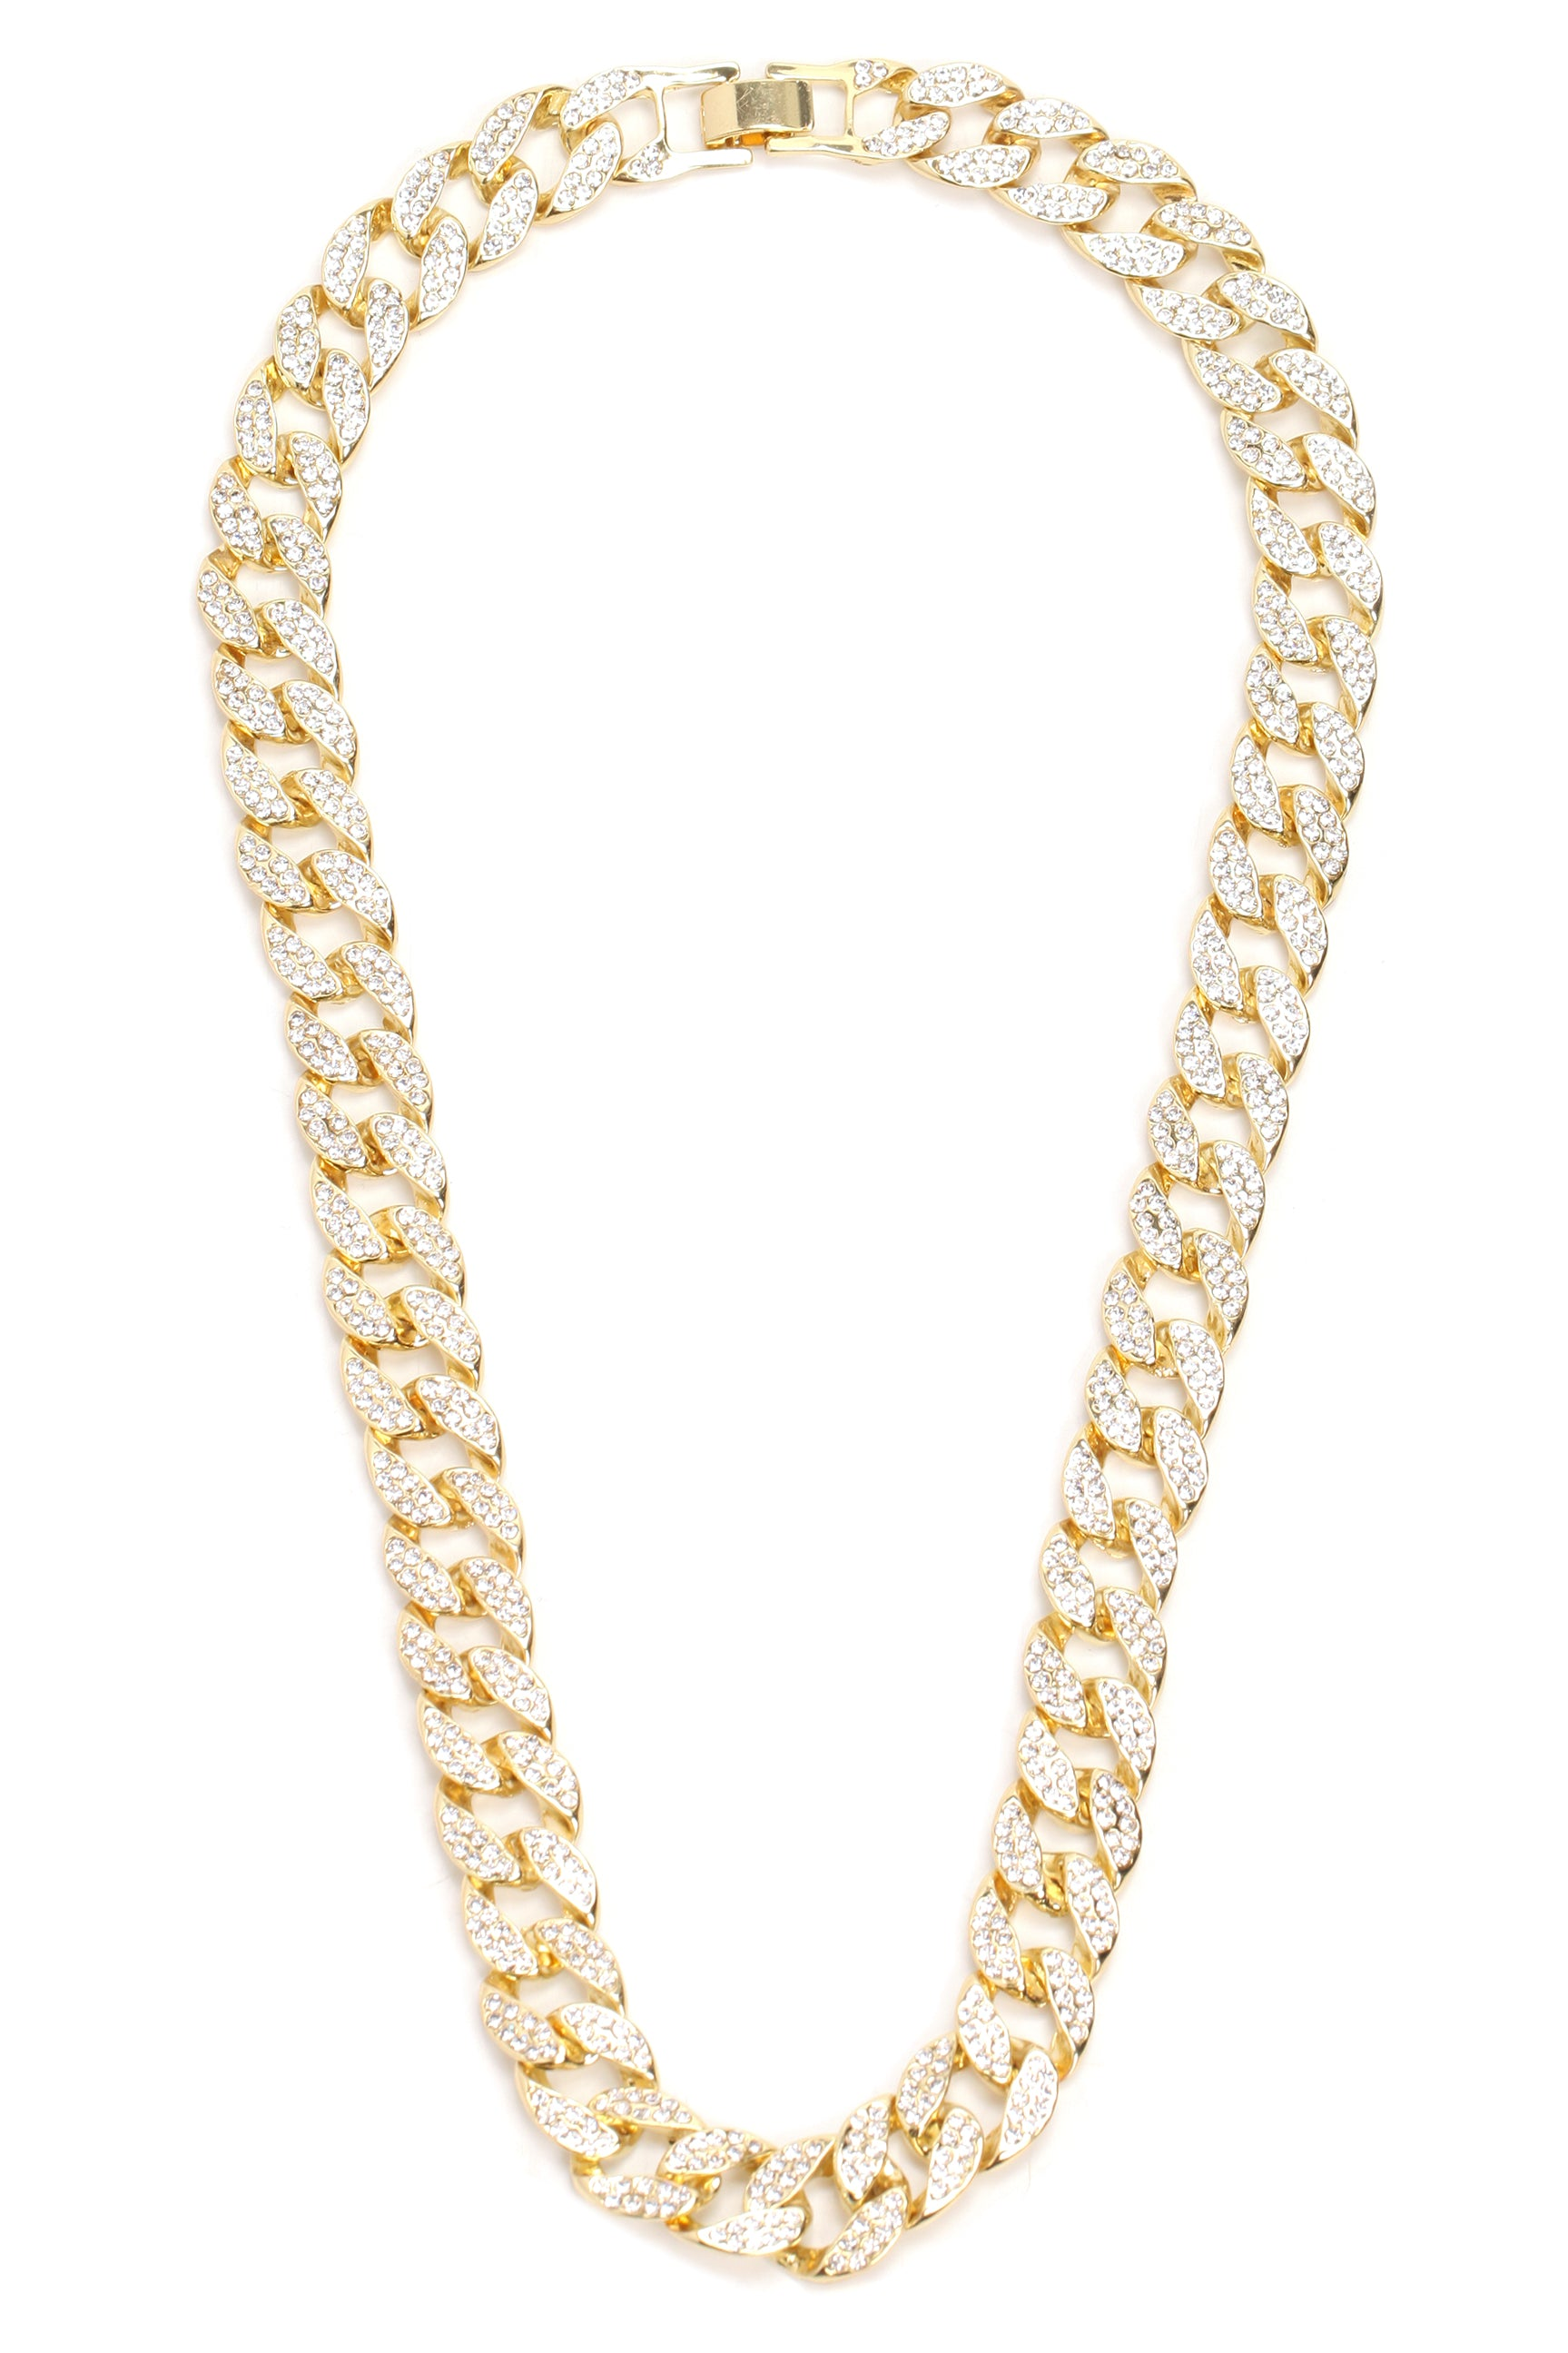 59fe1095ea Big Gold Chain Necklace - Gold